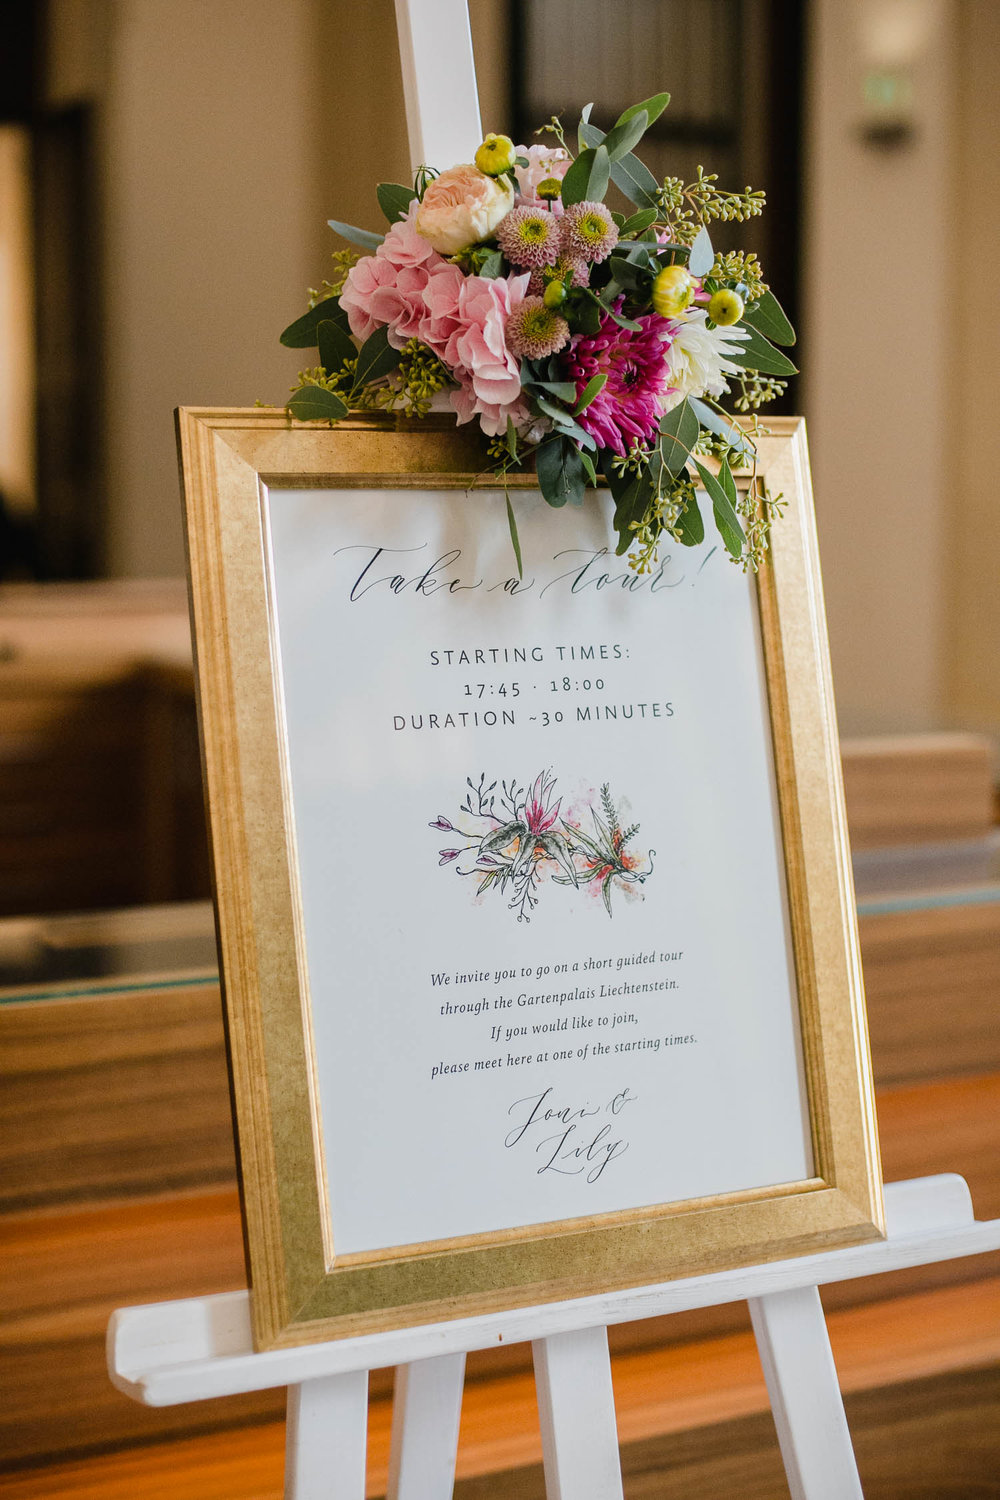 Wedding Welcome Sign In Gold Frame Photo